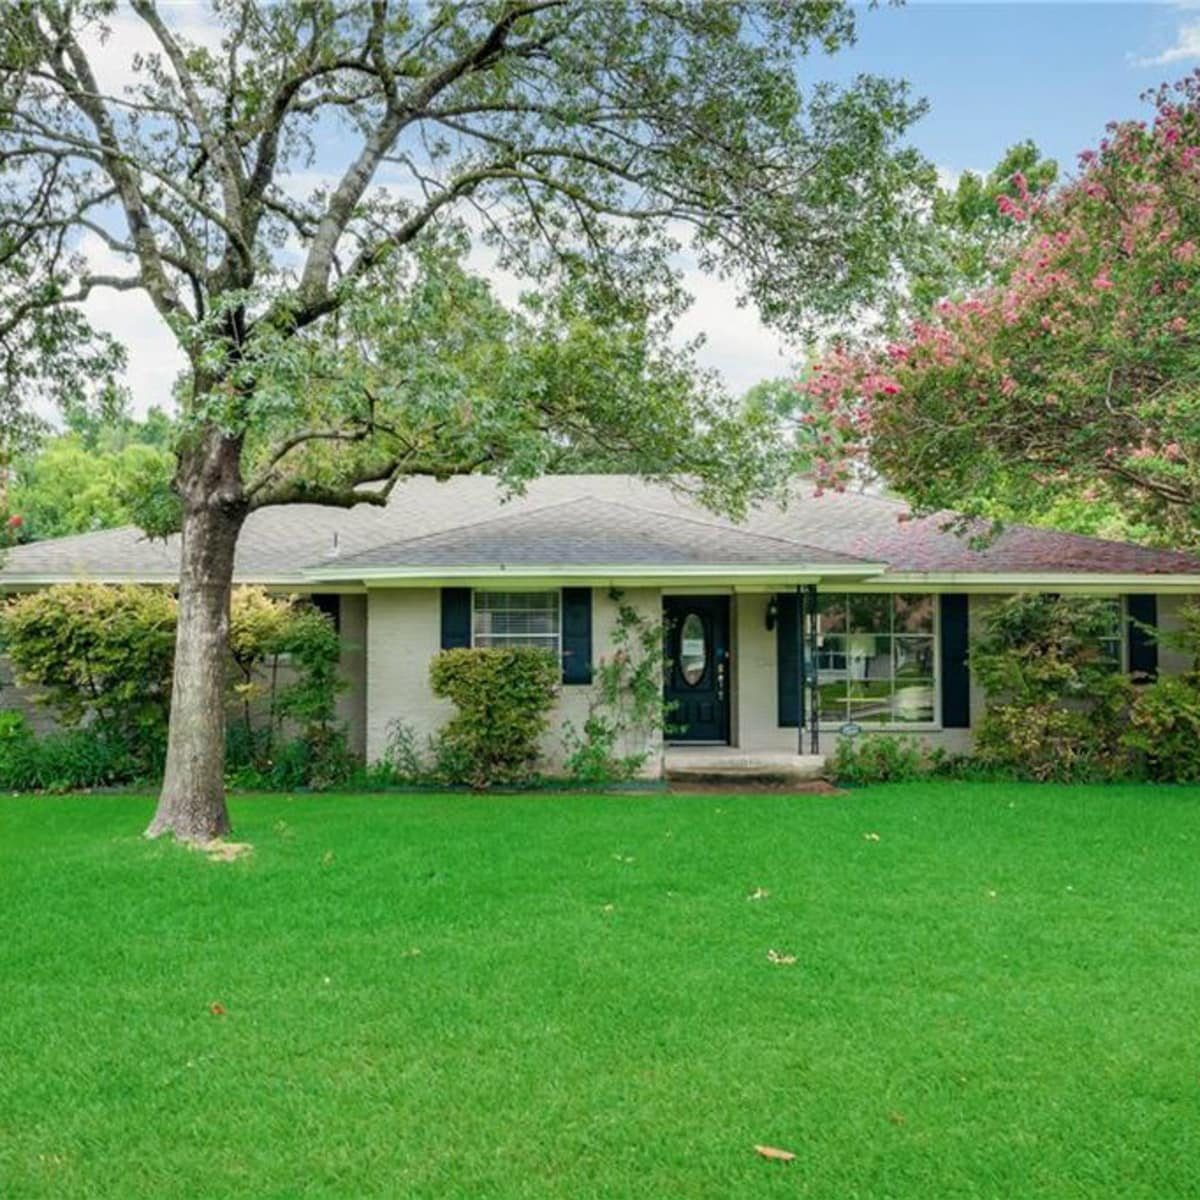 10222 Vinemont Street home for sale Dallas